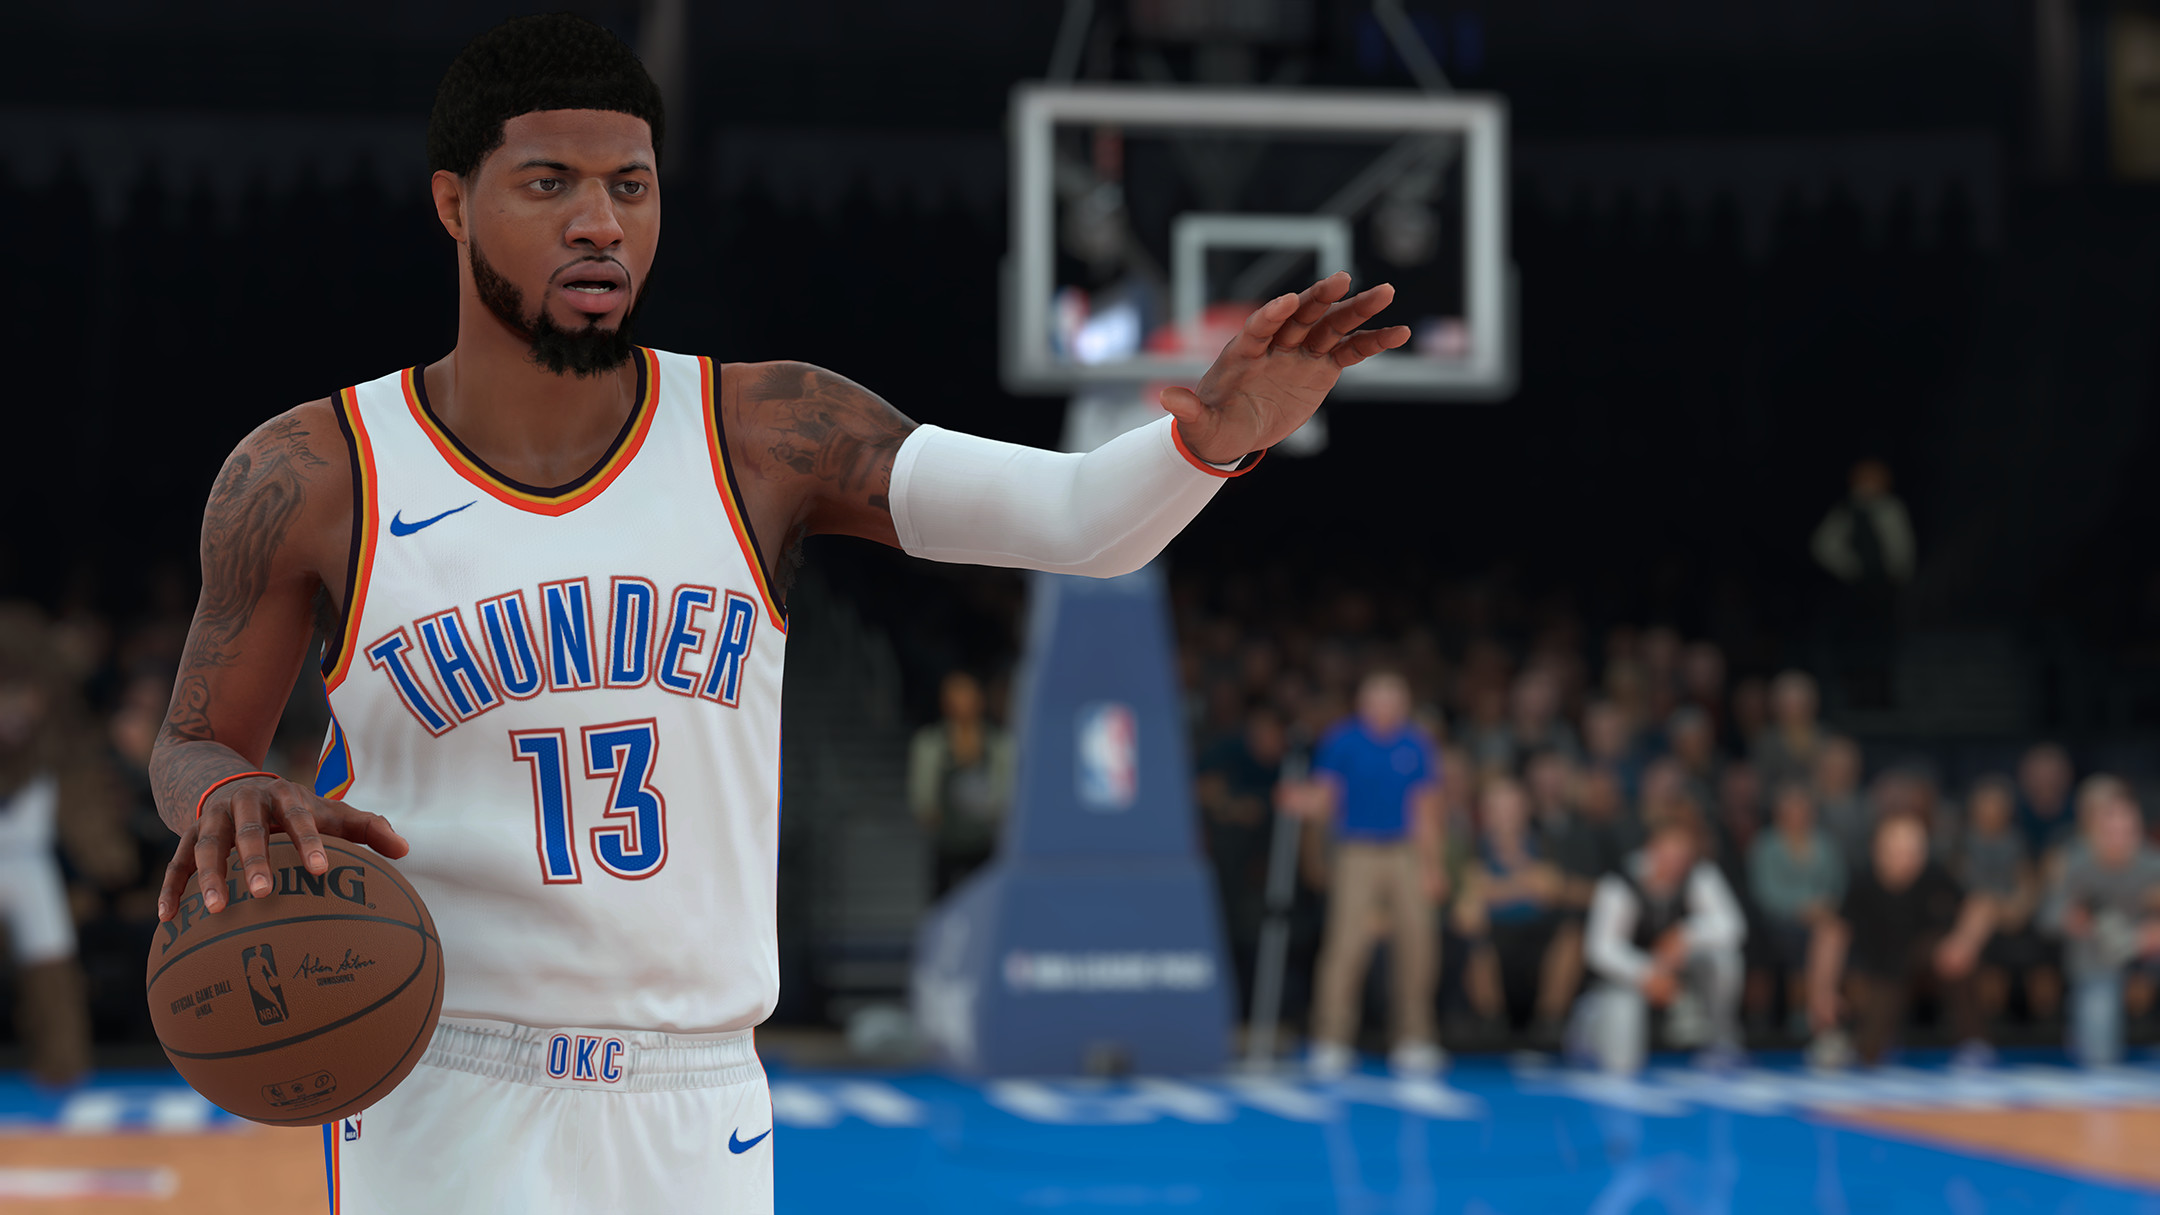 NBA 2K18 Update 1 10 Releases Without Patch Notes - 2K League Fixes